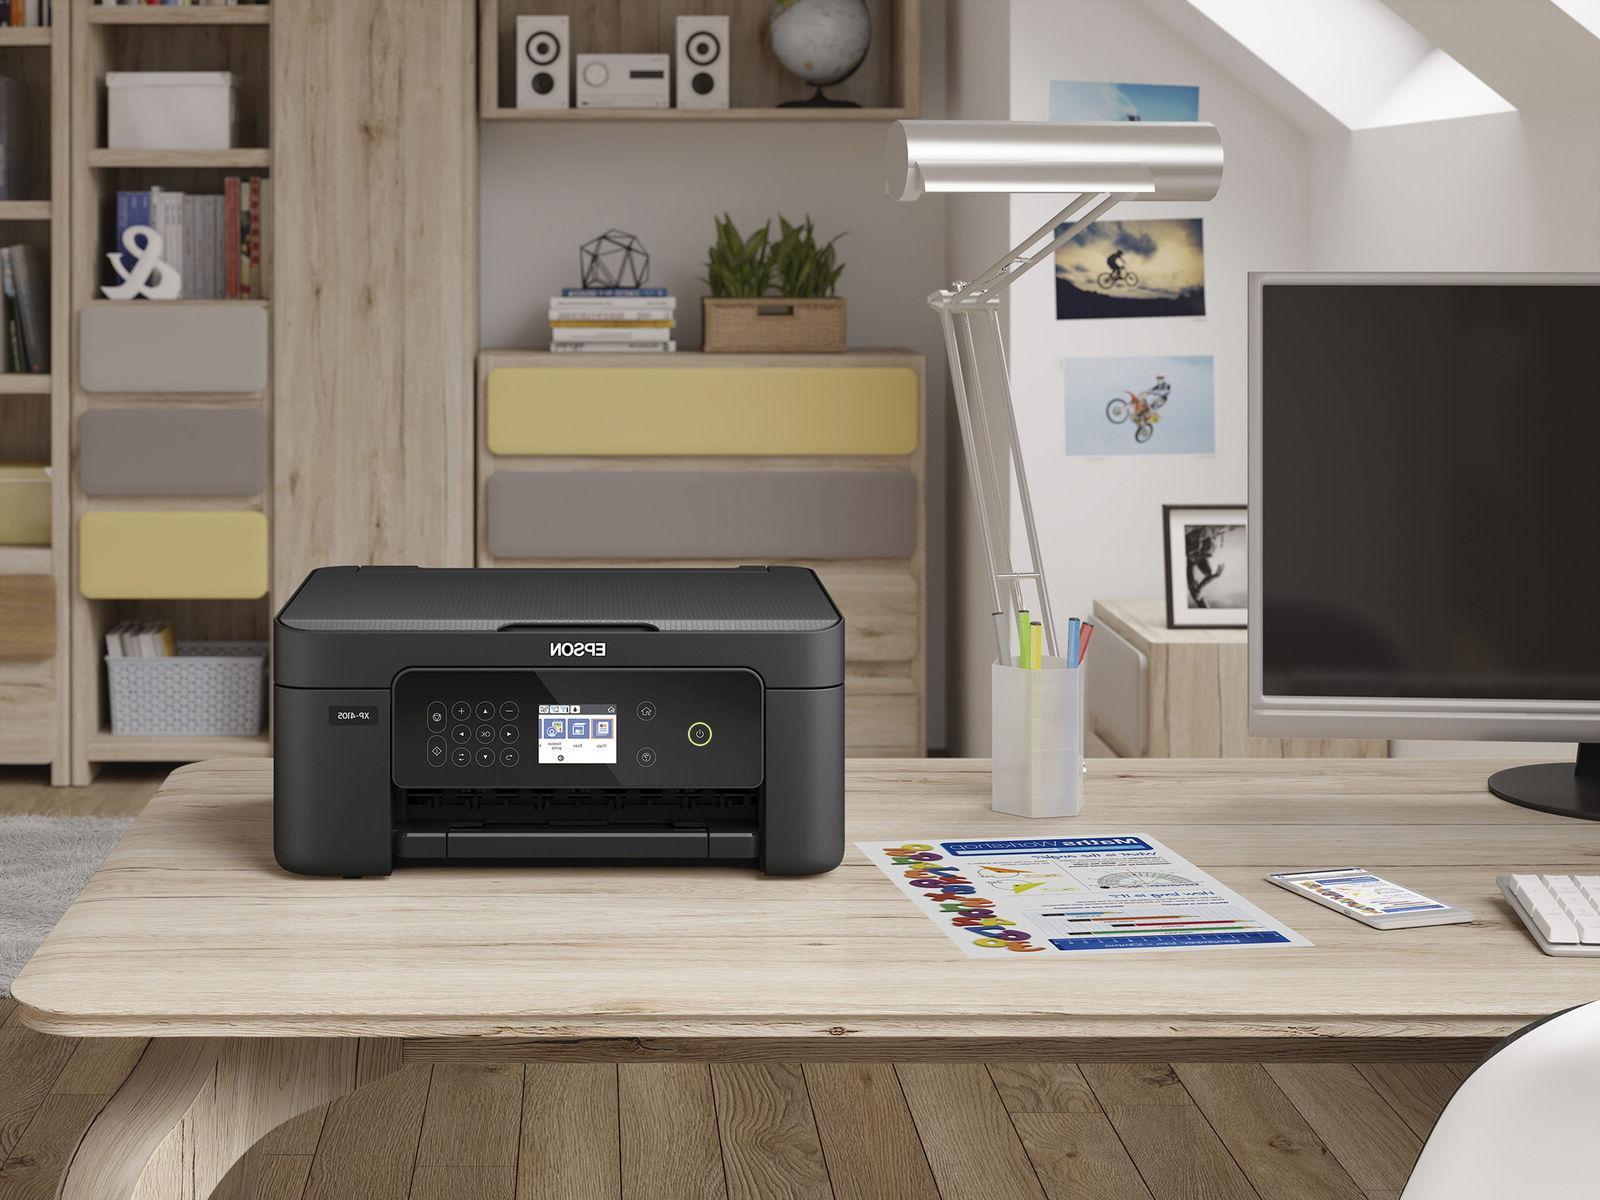 Epson Printer Copier All-In-One Wi-Fi With